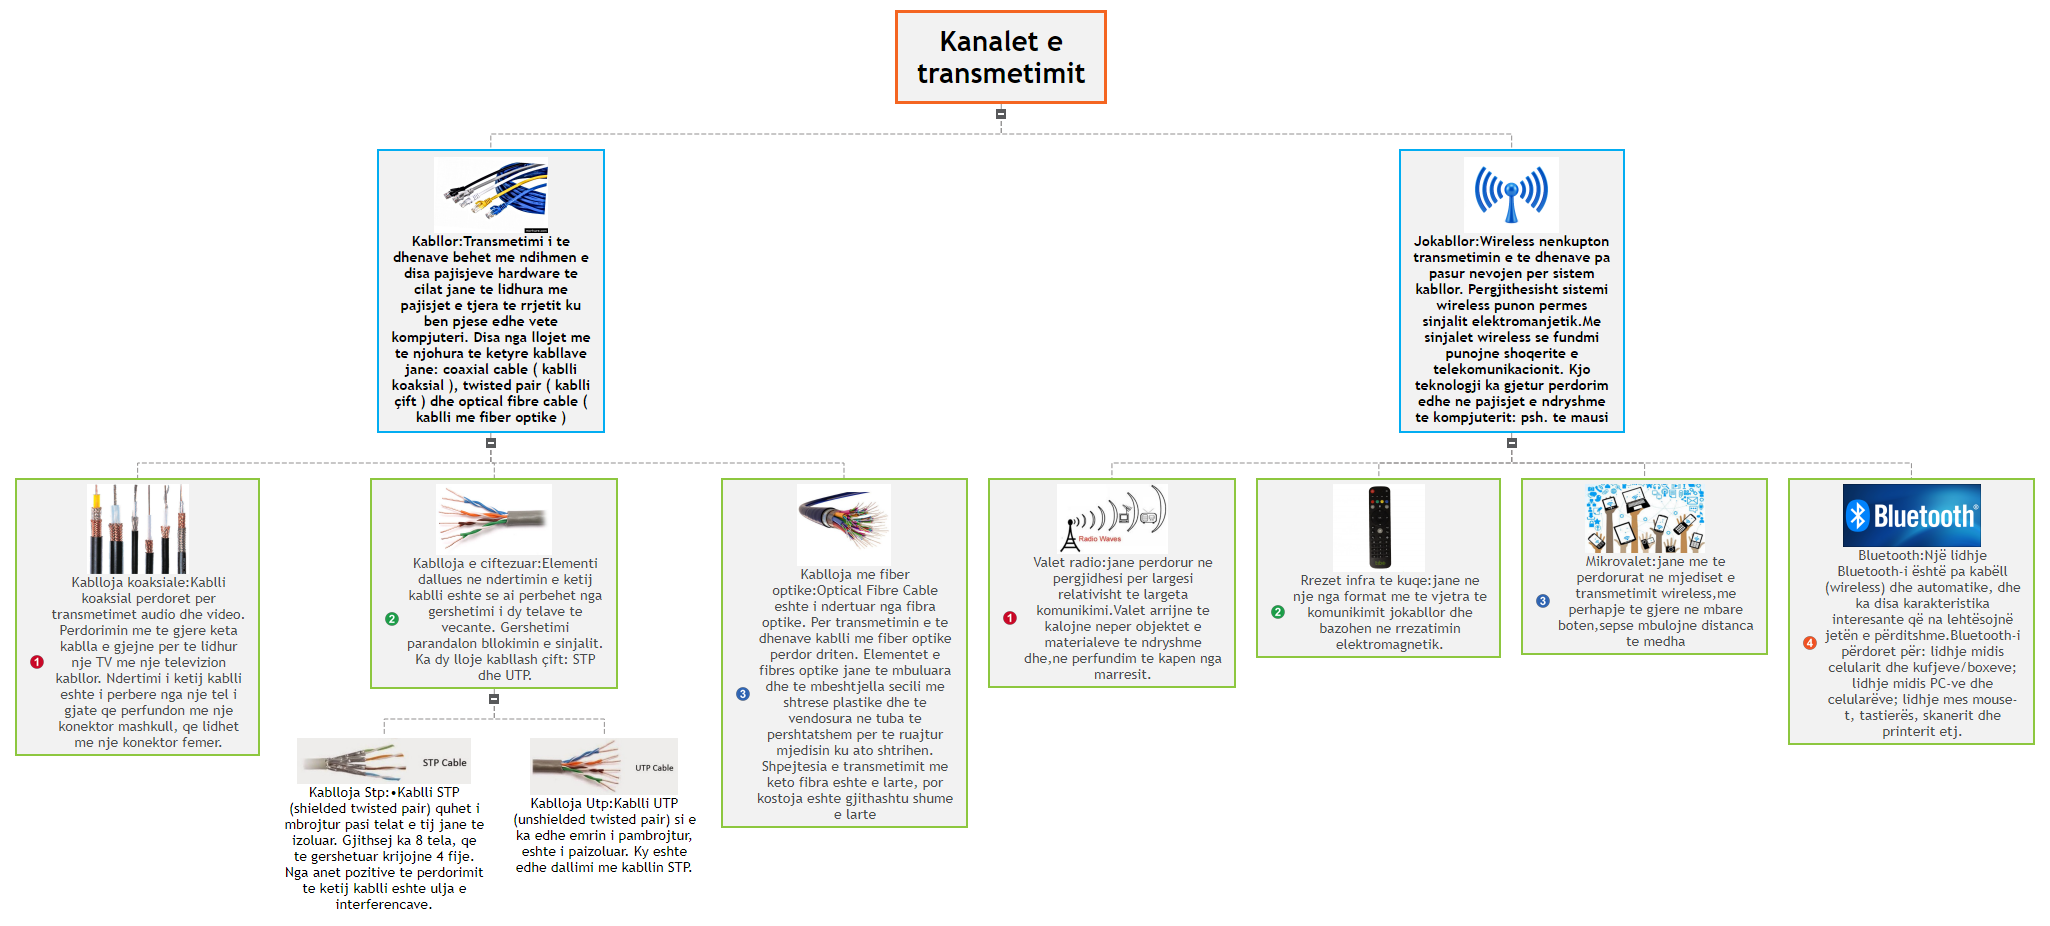 Kanalet e transmetimit Mind Map